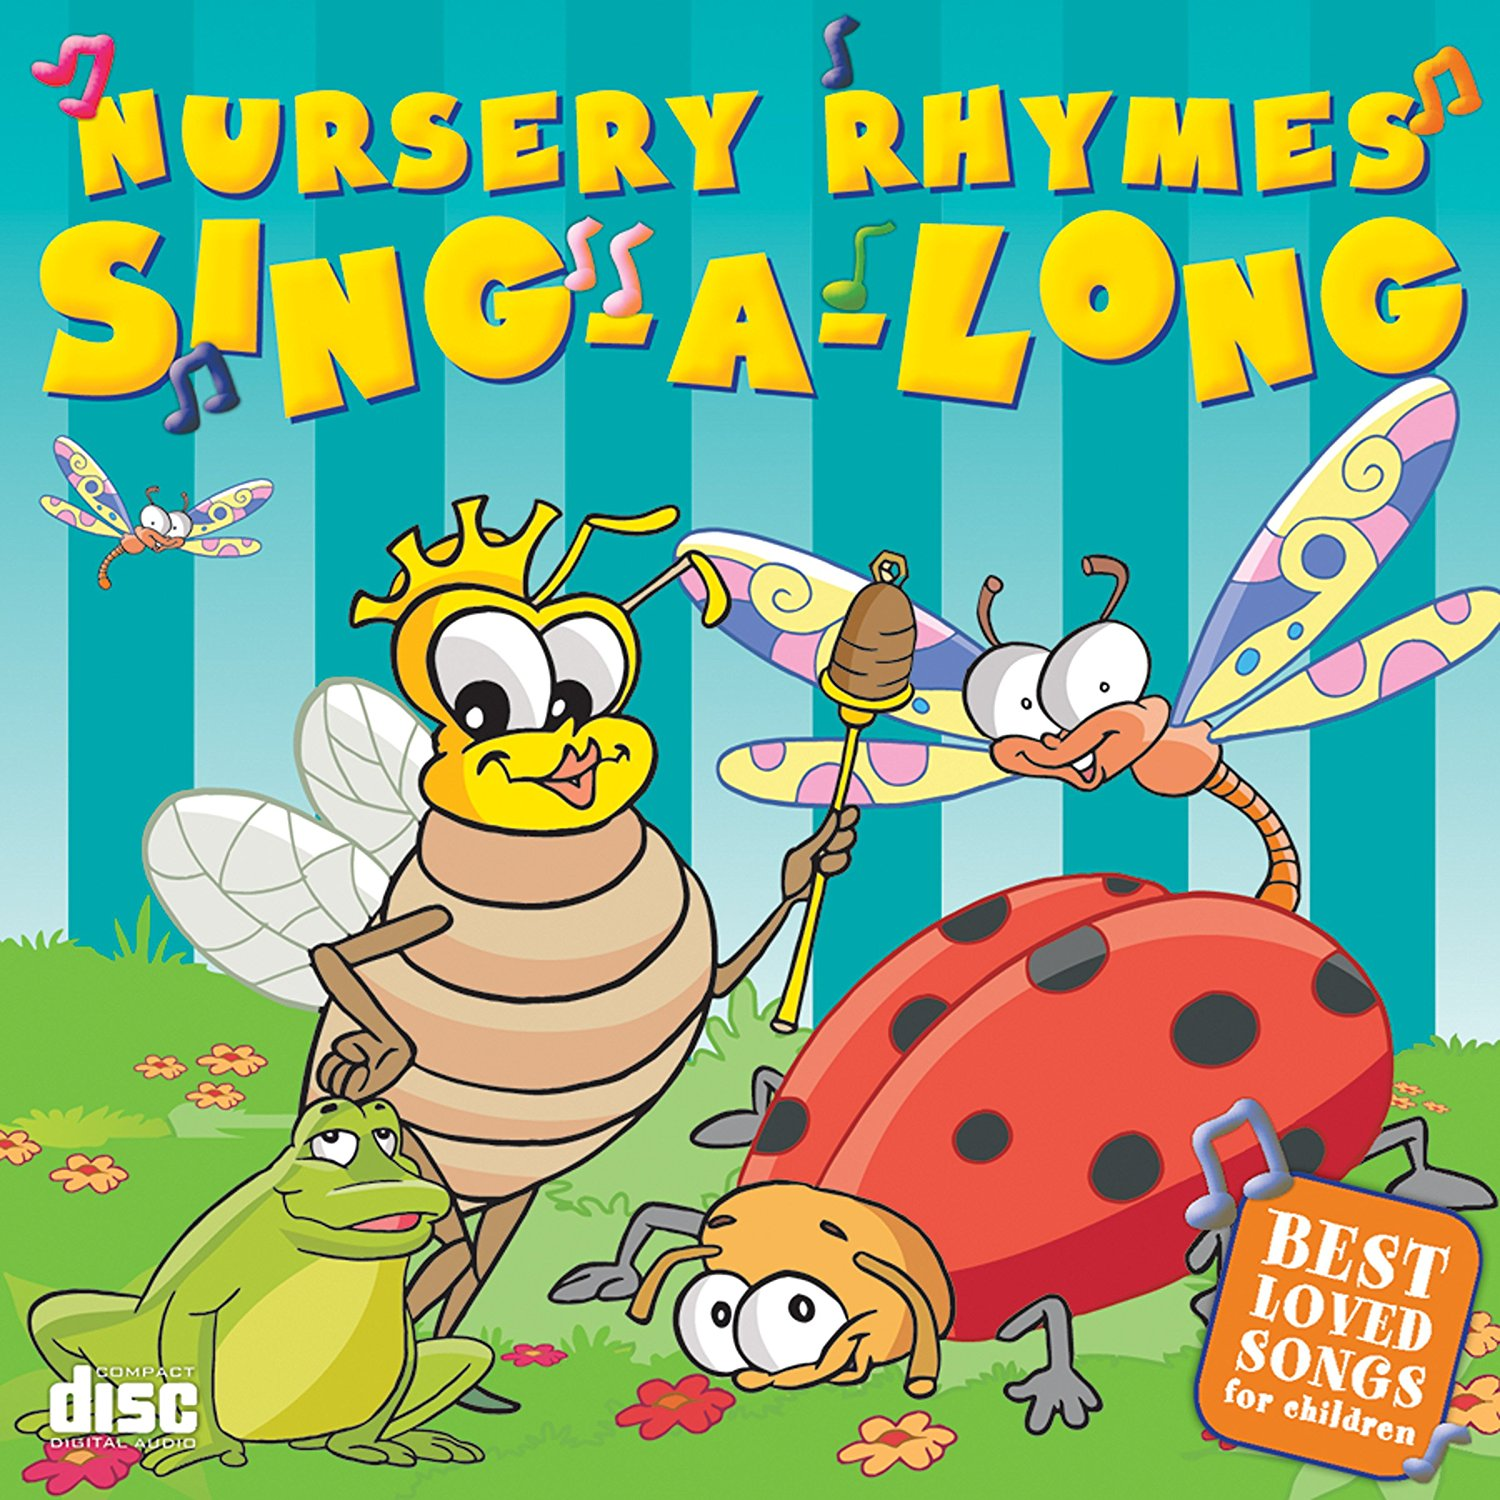 Various Artists 34 Nursery Rhymes Sing-a-longs - Best Loved Songs For Children